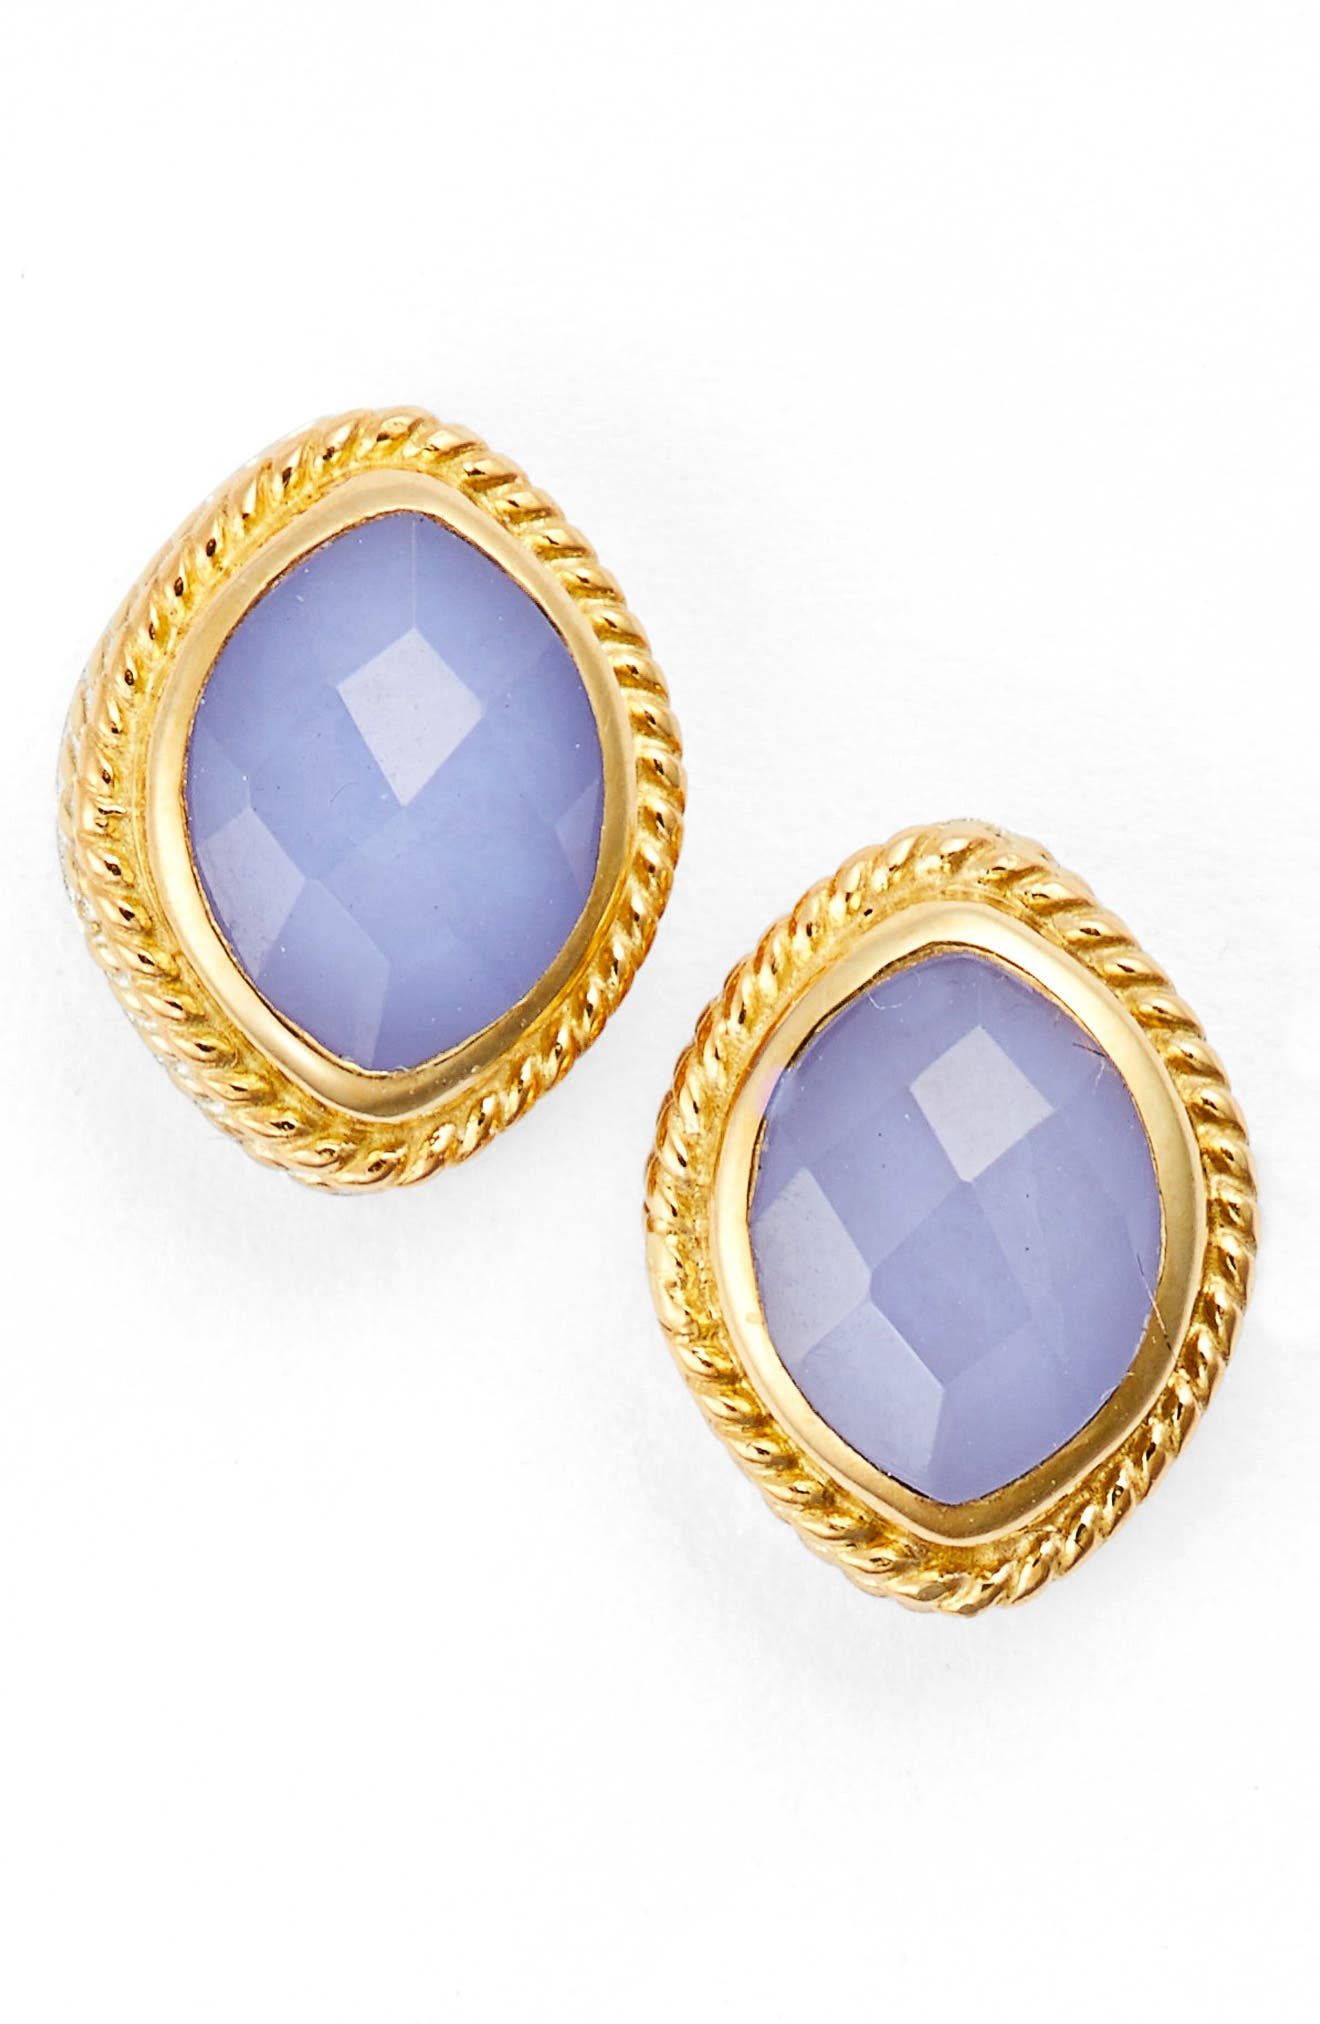 Semiprecious Stud Earrings,                             Main thumbnail 1, color,                             400